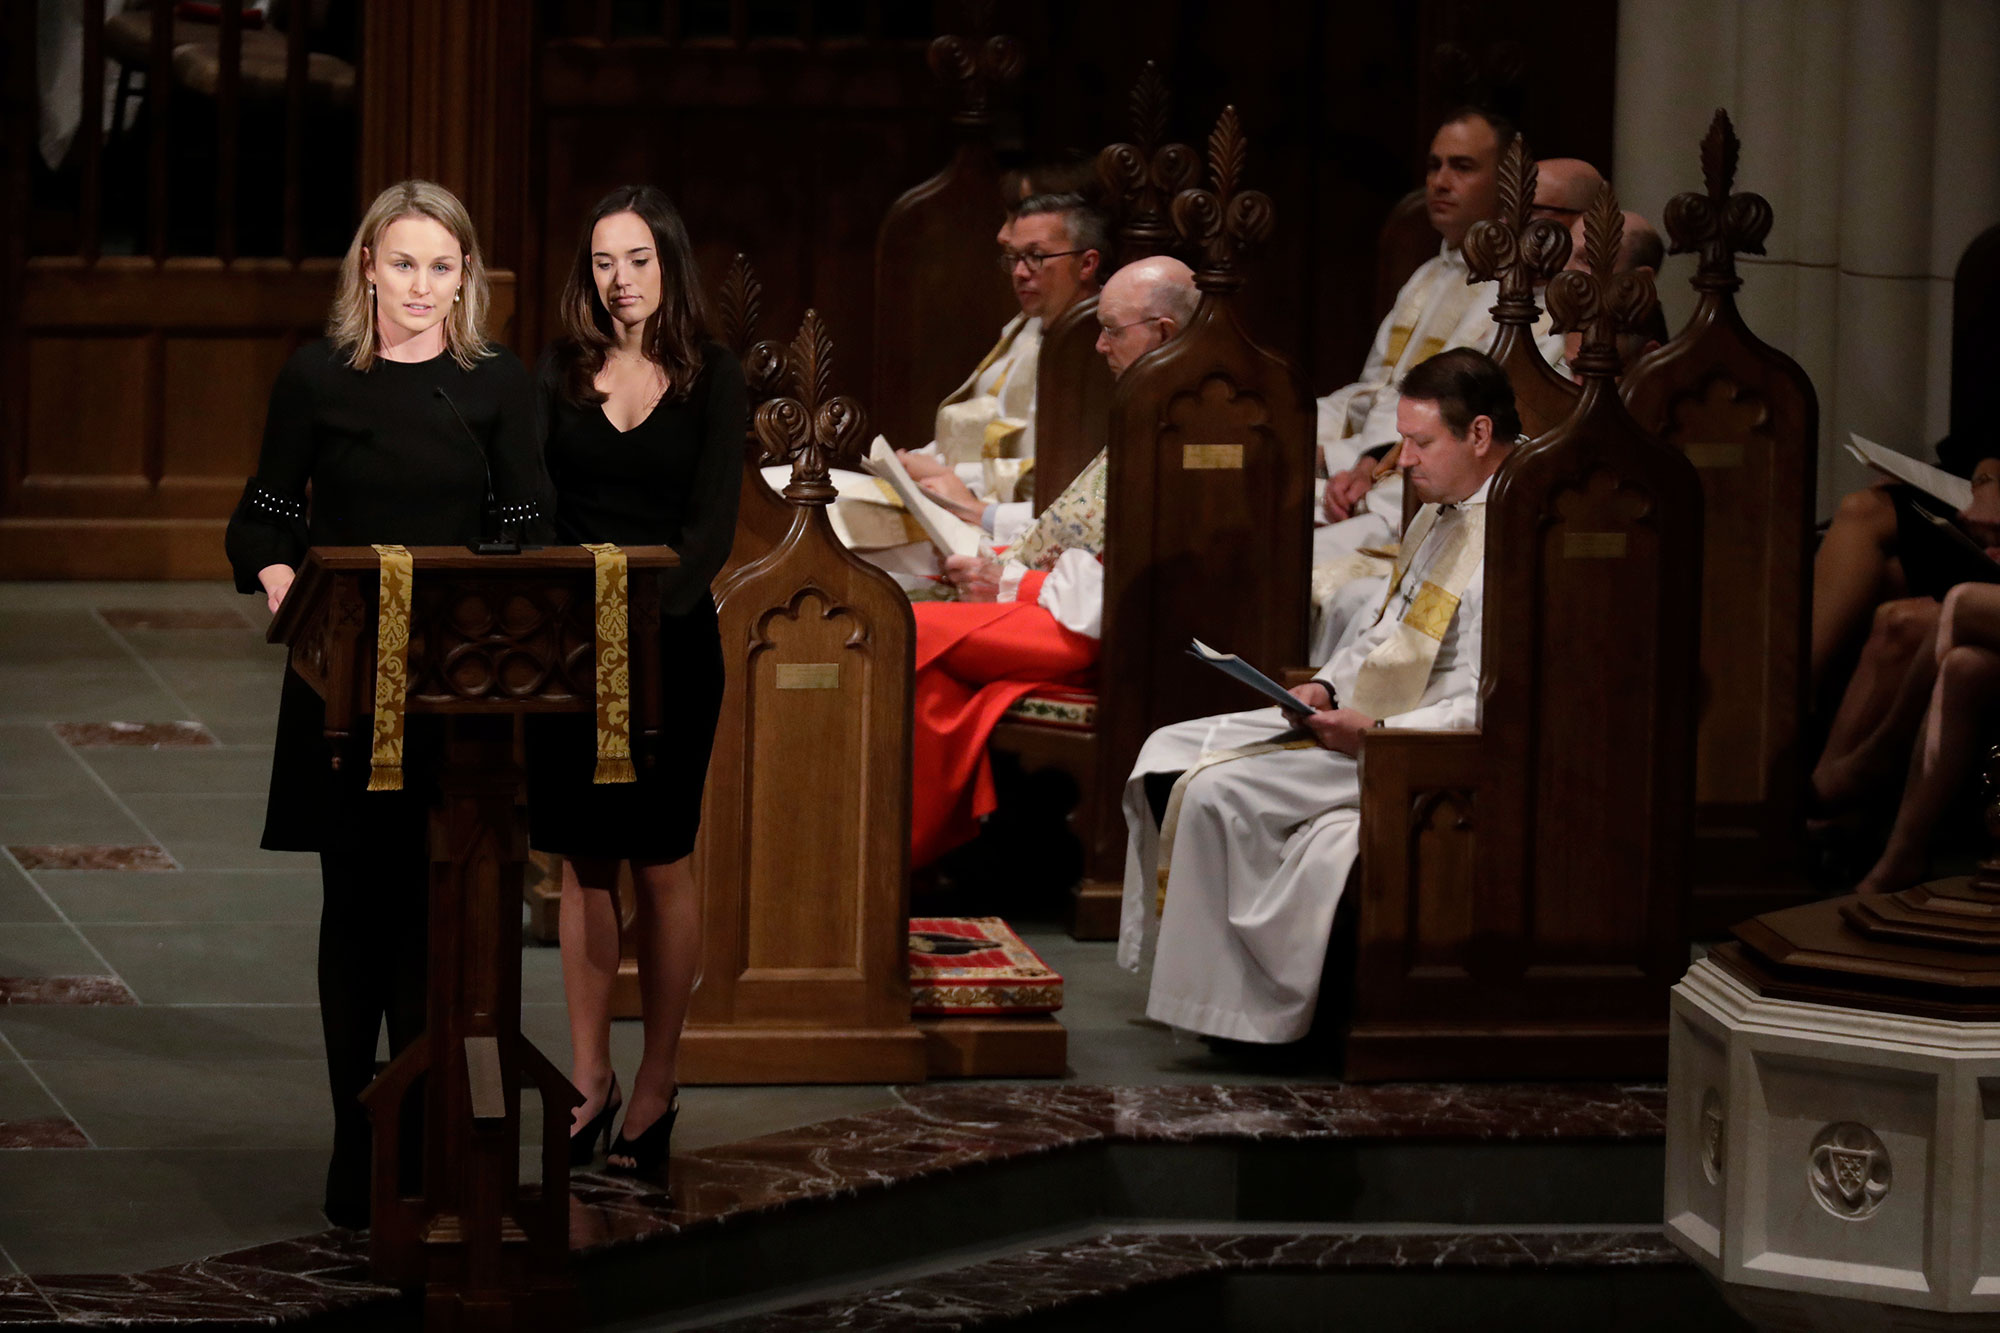 <div class='meta'><div class='origin-logo' data-origin='none'></div><span class='caption-text' data-credit='Mark Humphrey/AP Photo'>Granddaughters Nancy Ellis LeBlond Sosa, left, and Georgia Grace Koch read scripture during a funeral for former President George H.W. Bush at St. Martin's Episcopal Church.</span></div>